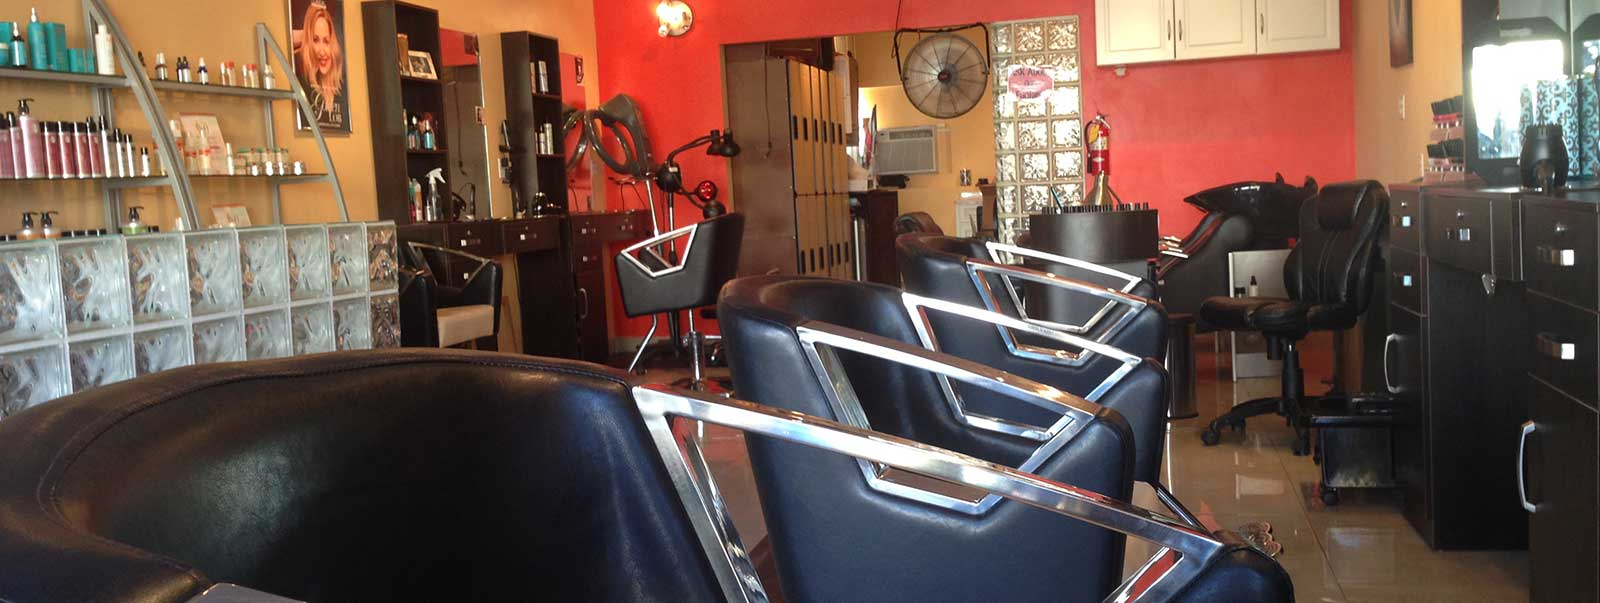 beauty-salon-oceanside-ca-15